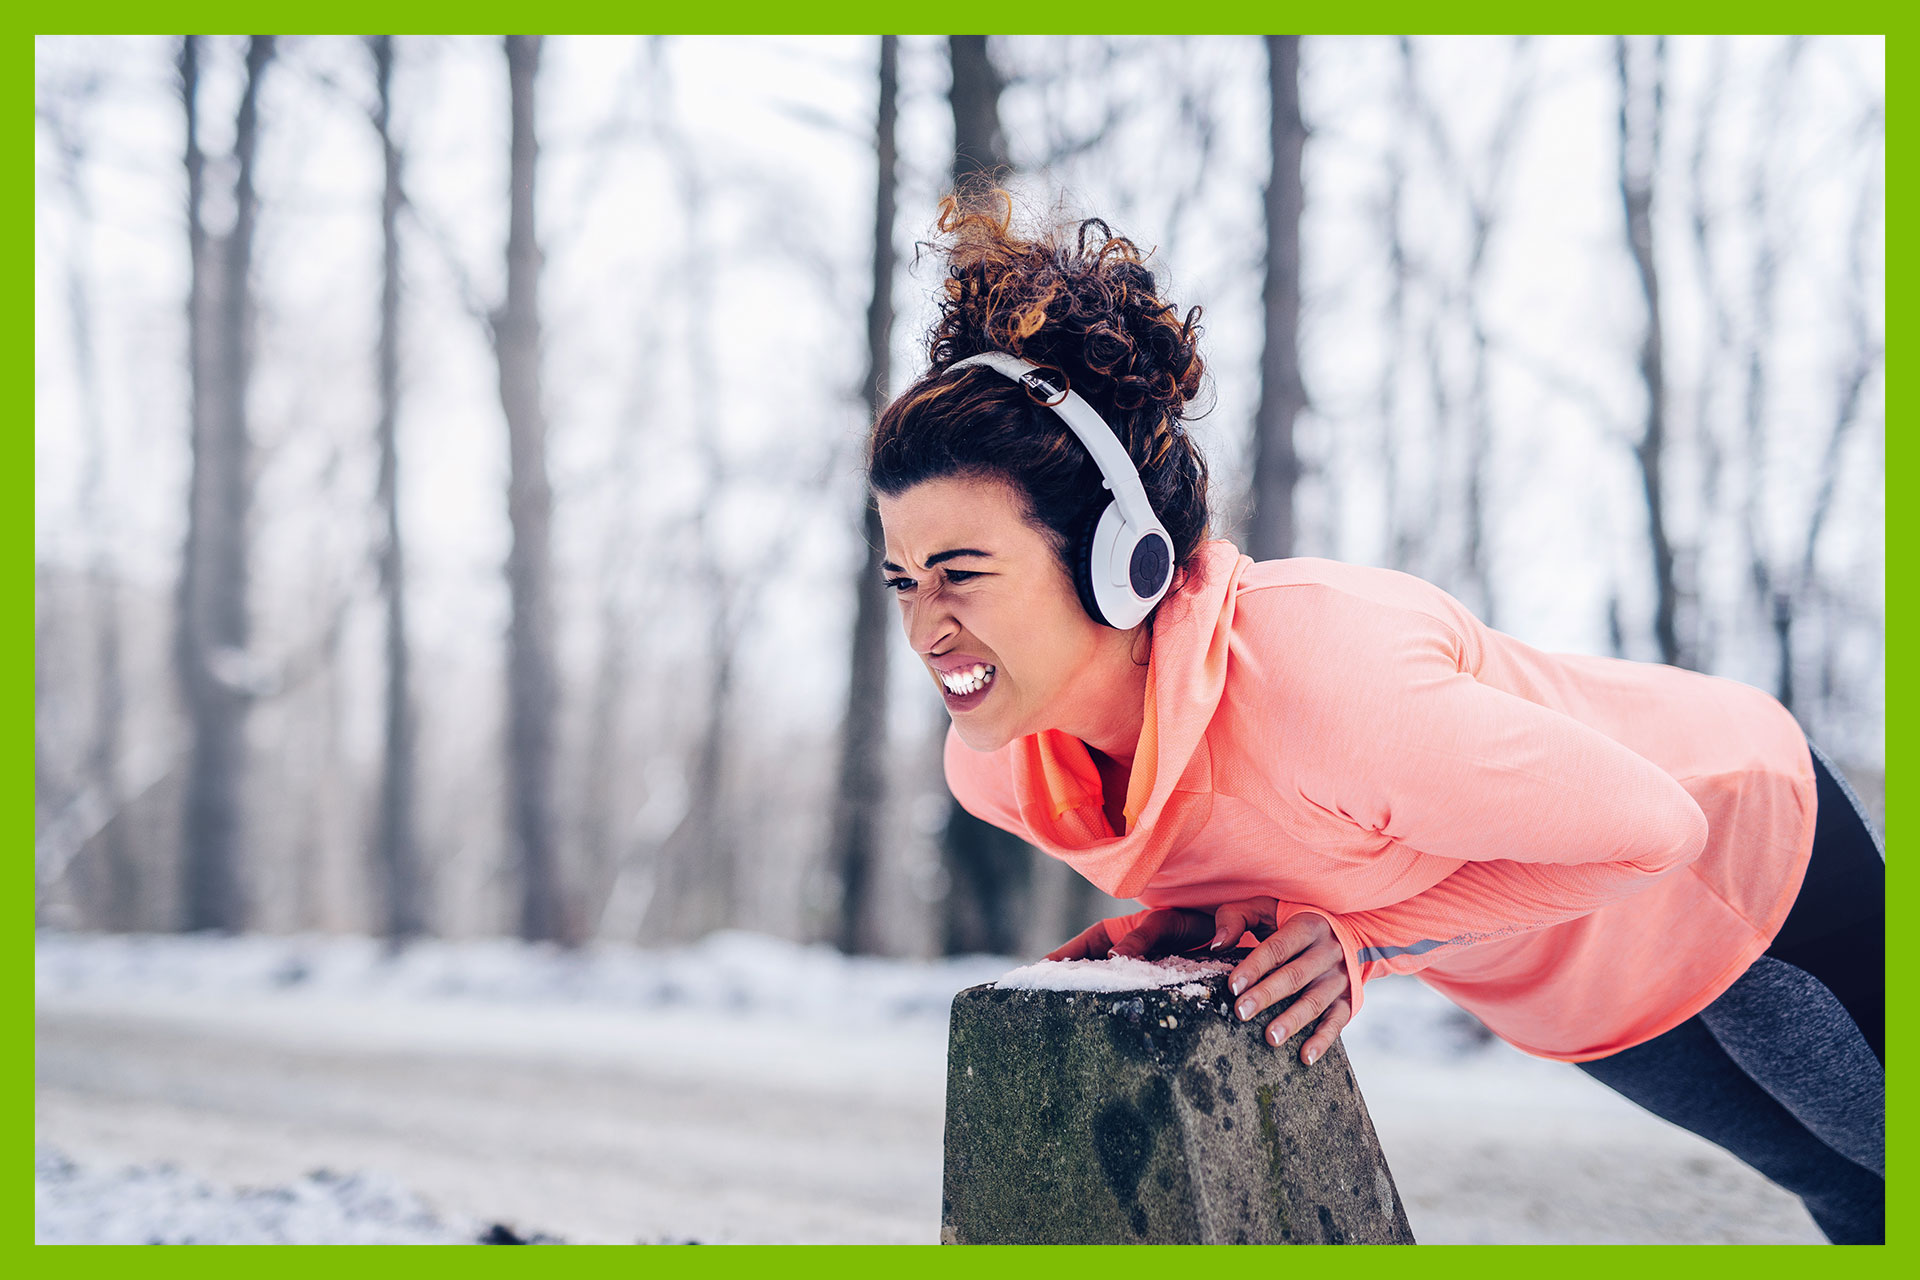 LoHi has waived enrollment fees so don't let the Denver Winter freeze your fitness.